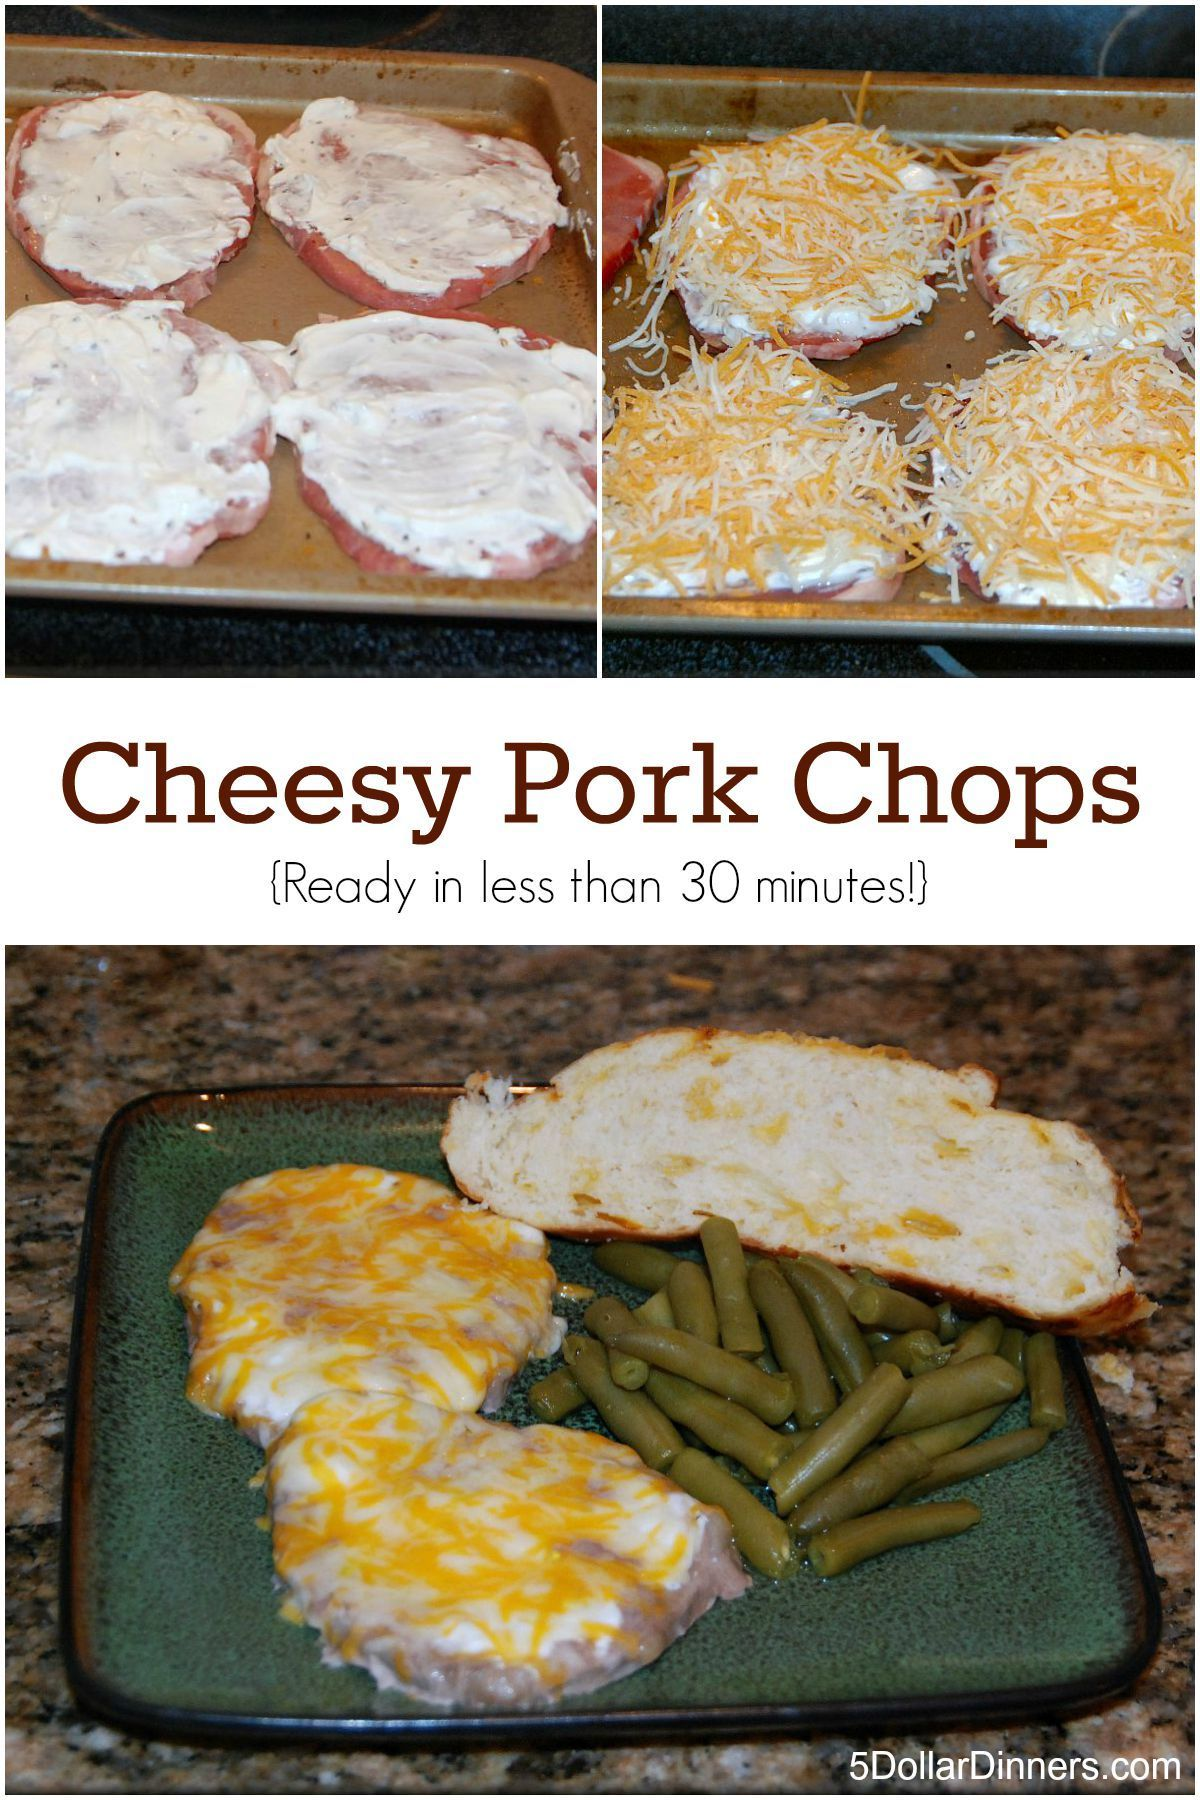 Cheesy Pork Chops - $5 Dinners | Recipes, Meal Plans, Coupons #grilledporkchops